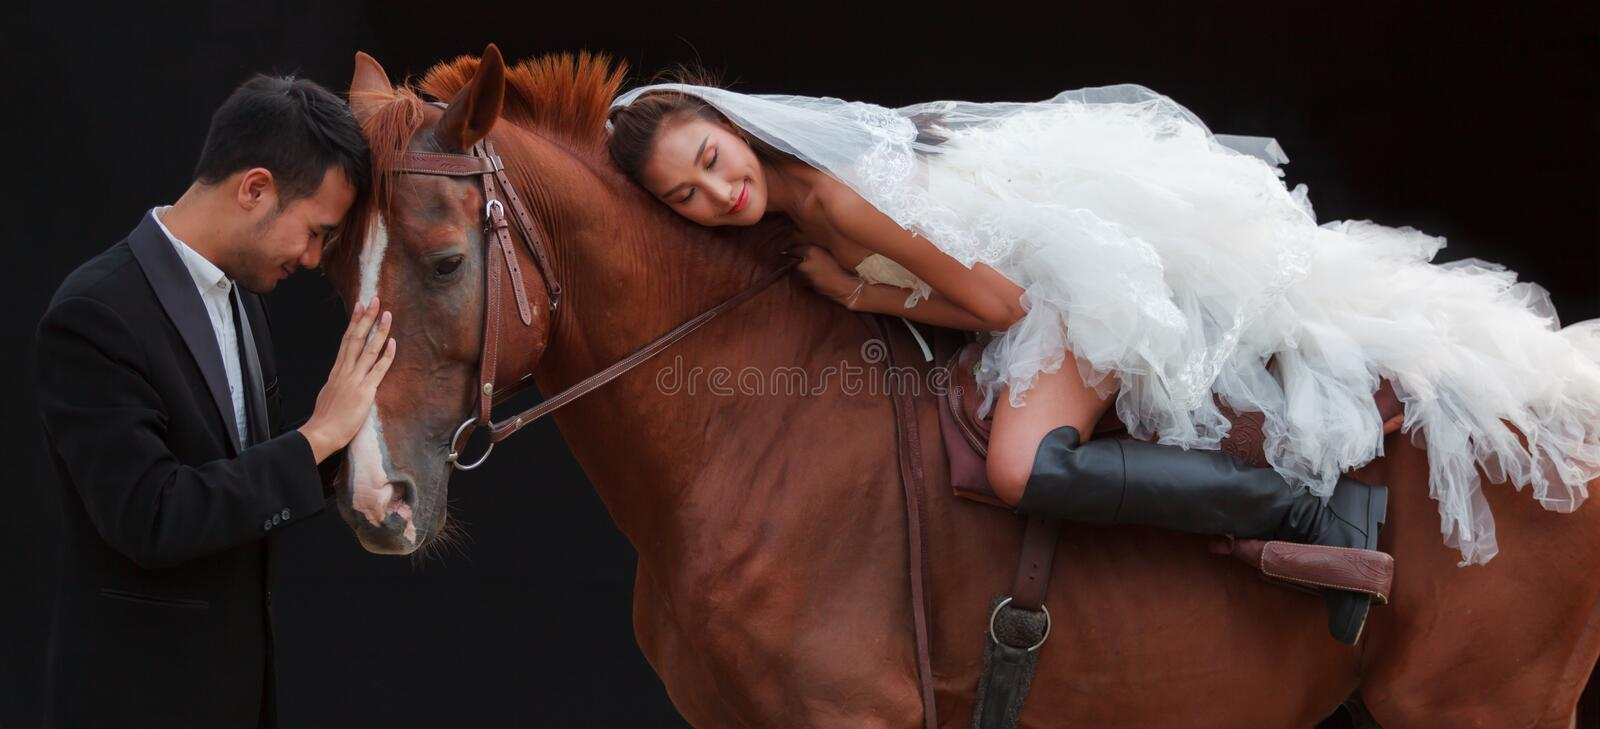 Young newlywed couple, beautiful beauty bride in fashion white bridal wedding costume riding on strong muscular horse standing by stock image